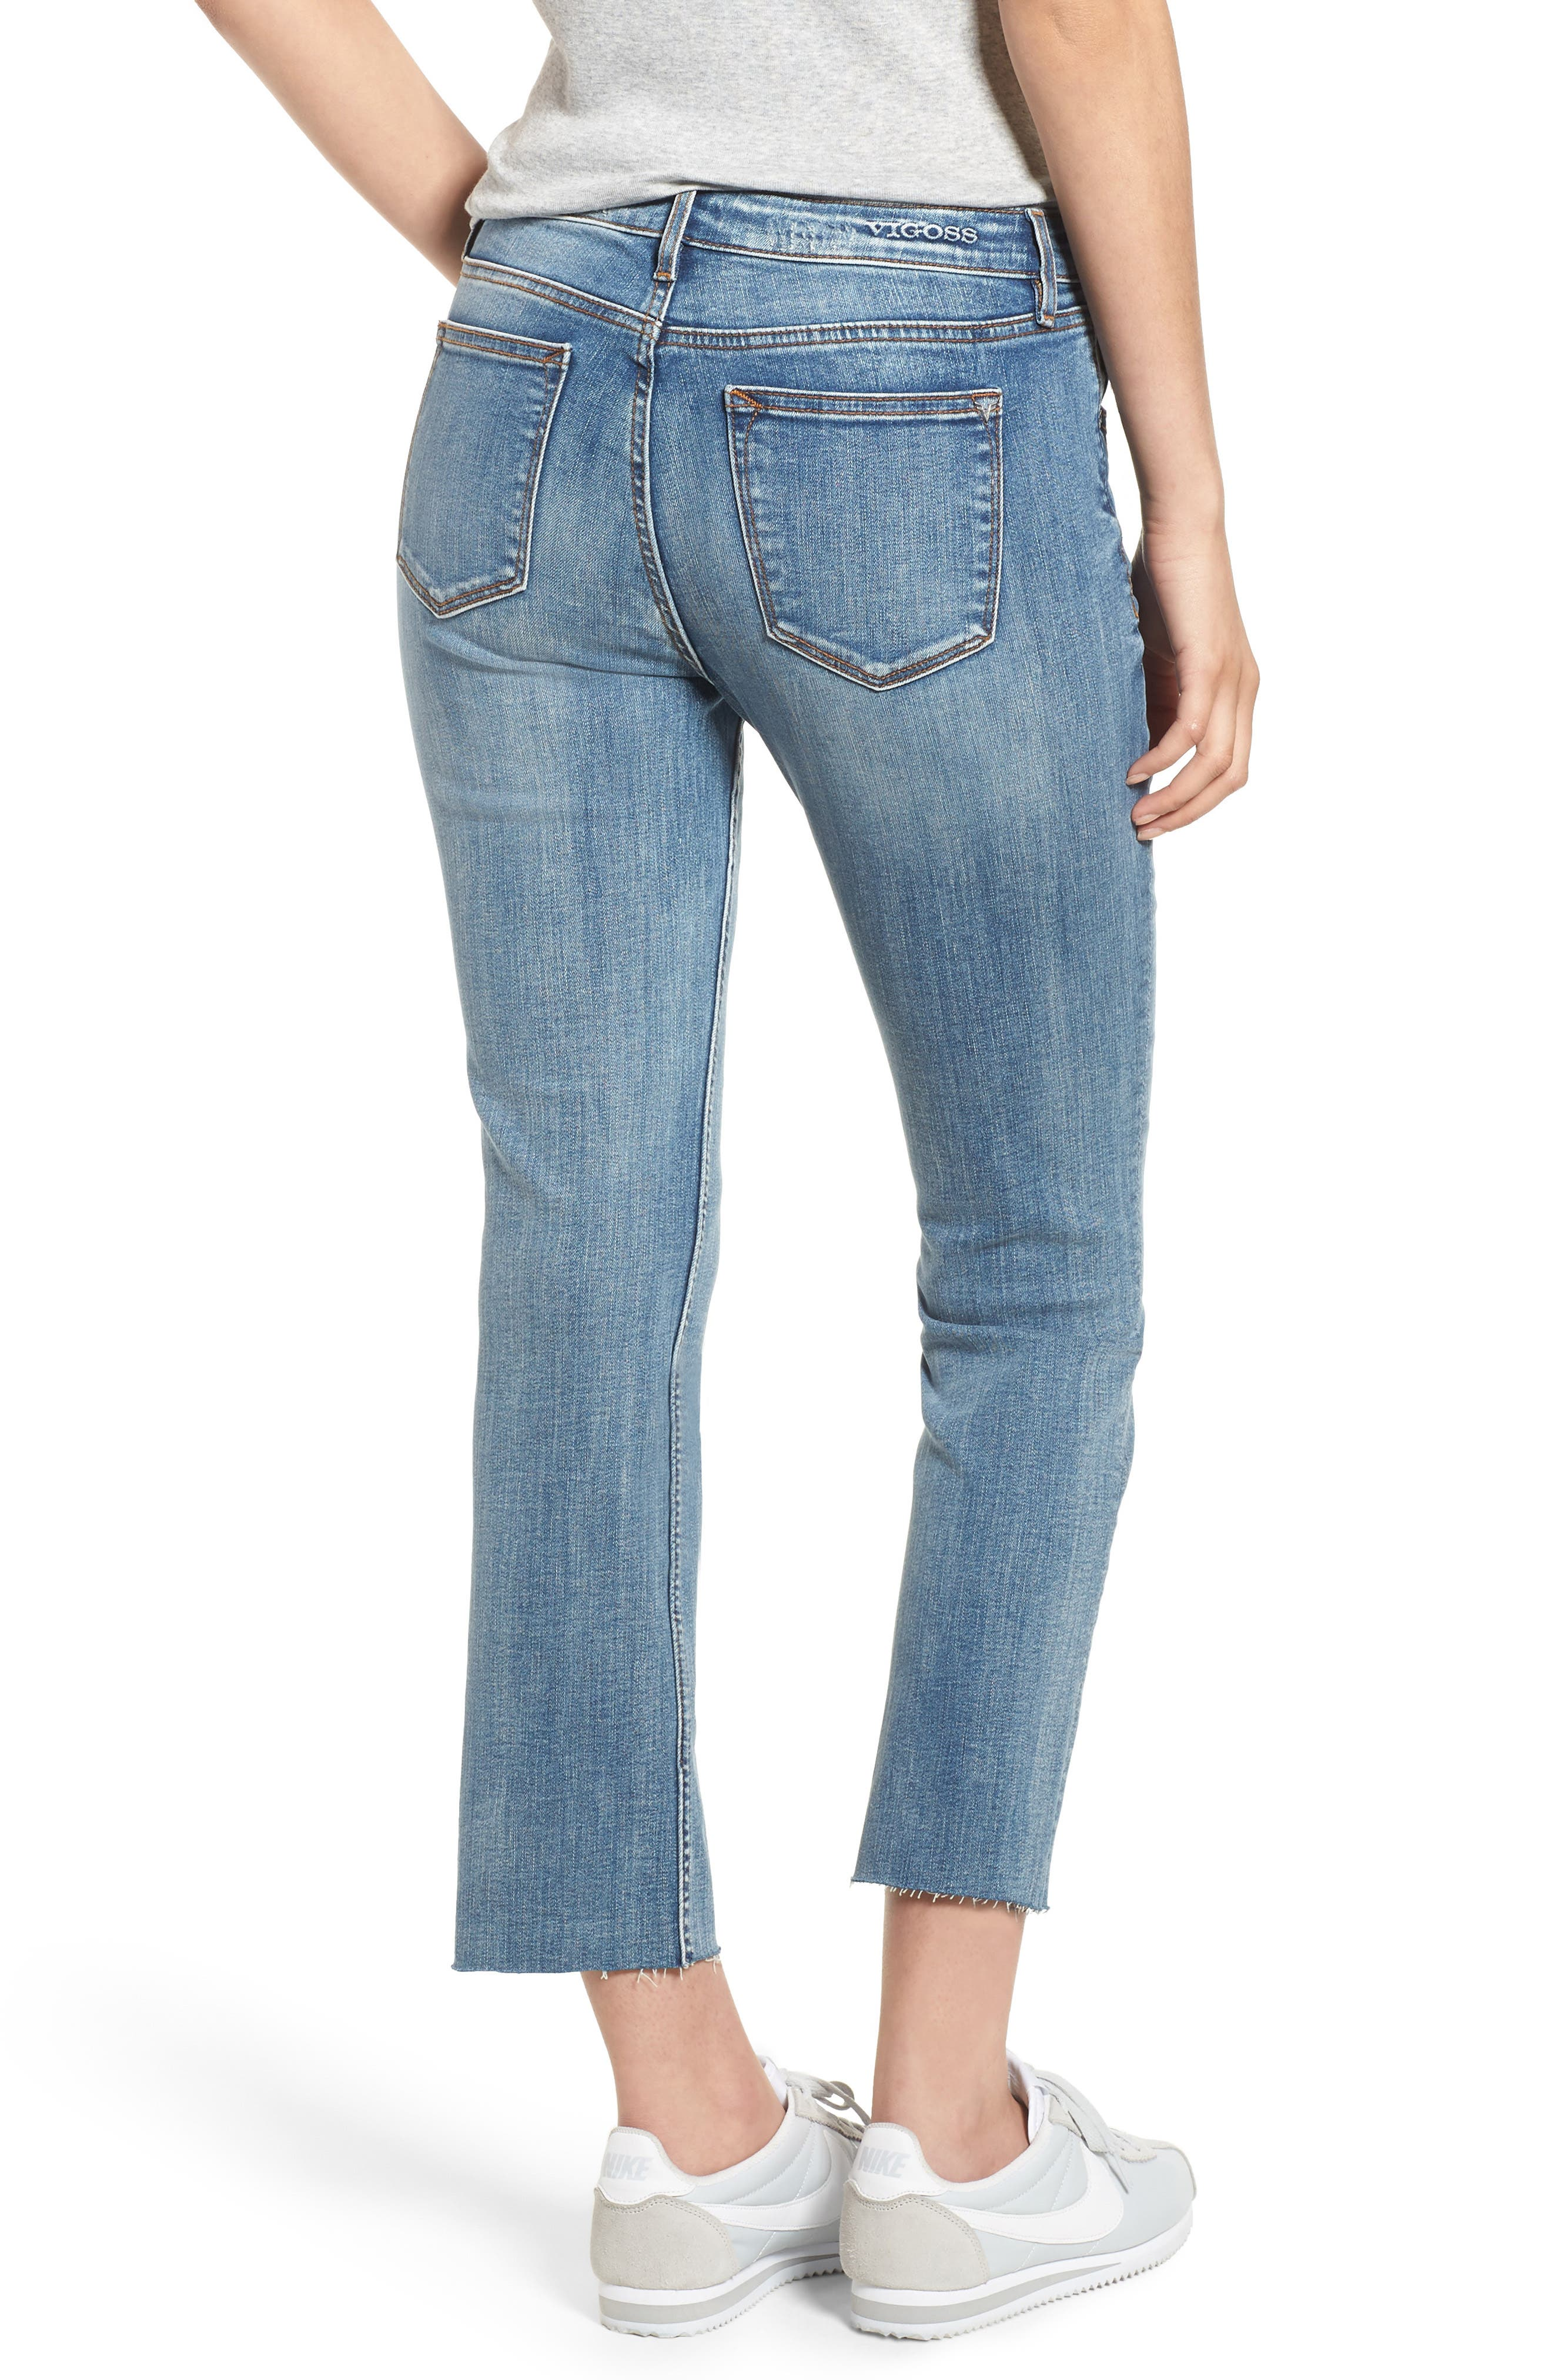 Jagger Crop Straight Leg Jeans,                             Alternate thumbnail 2, color,